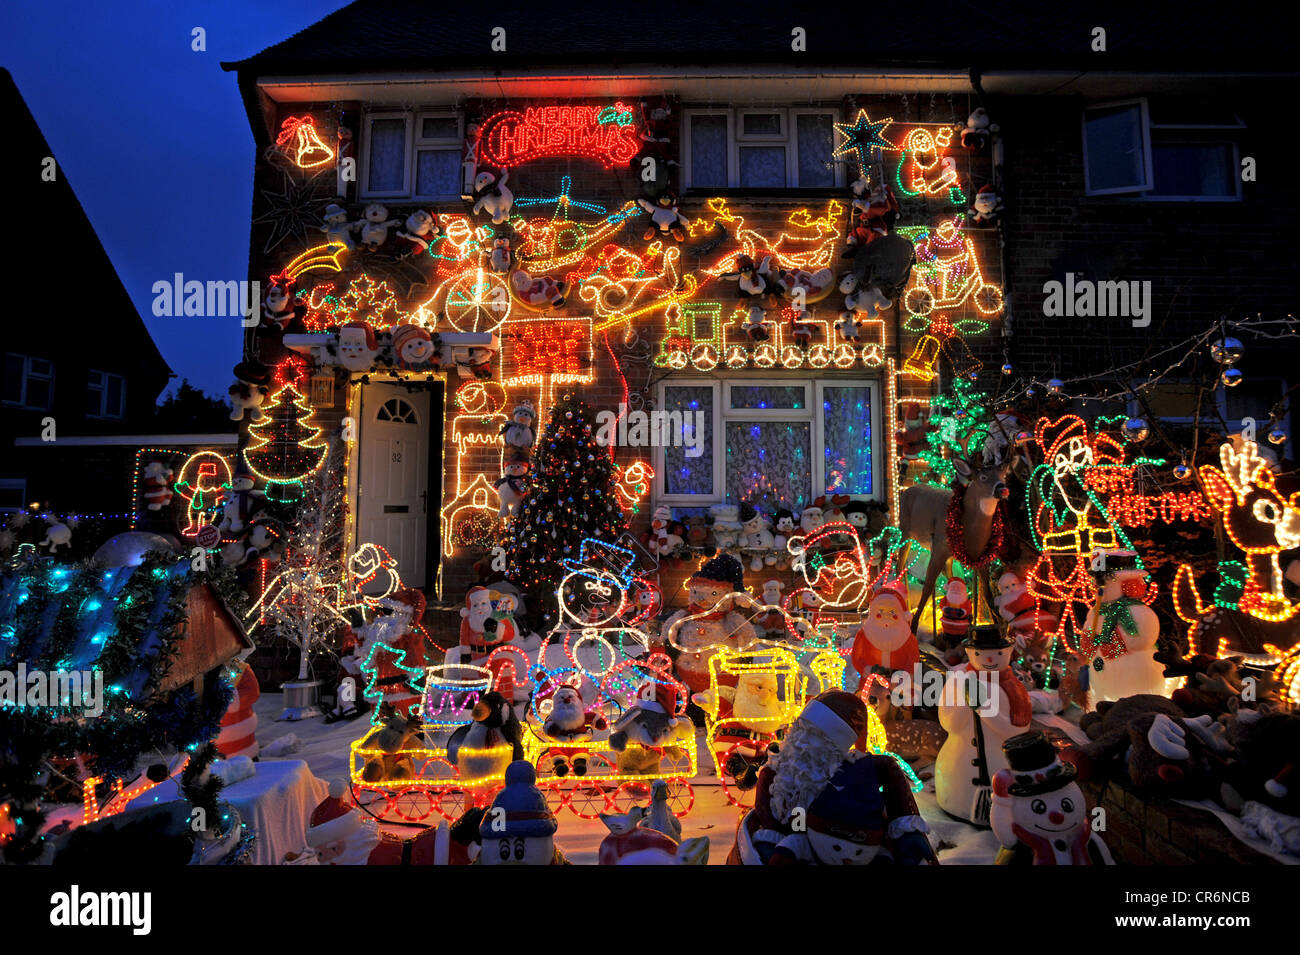 Hundreds of Christmas lights decorate the outside of a house in ...